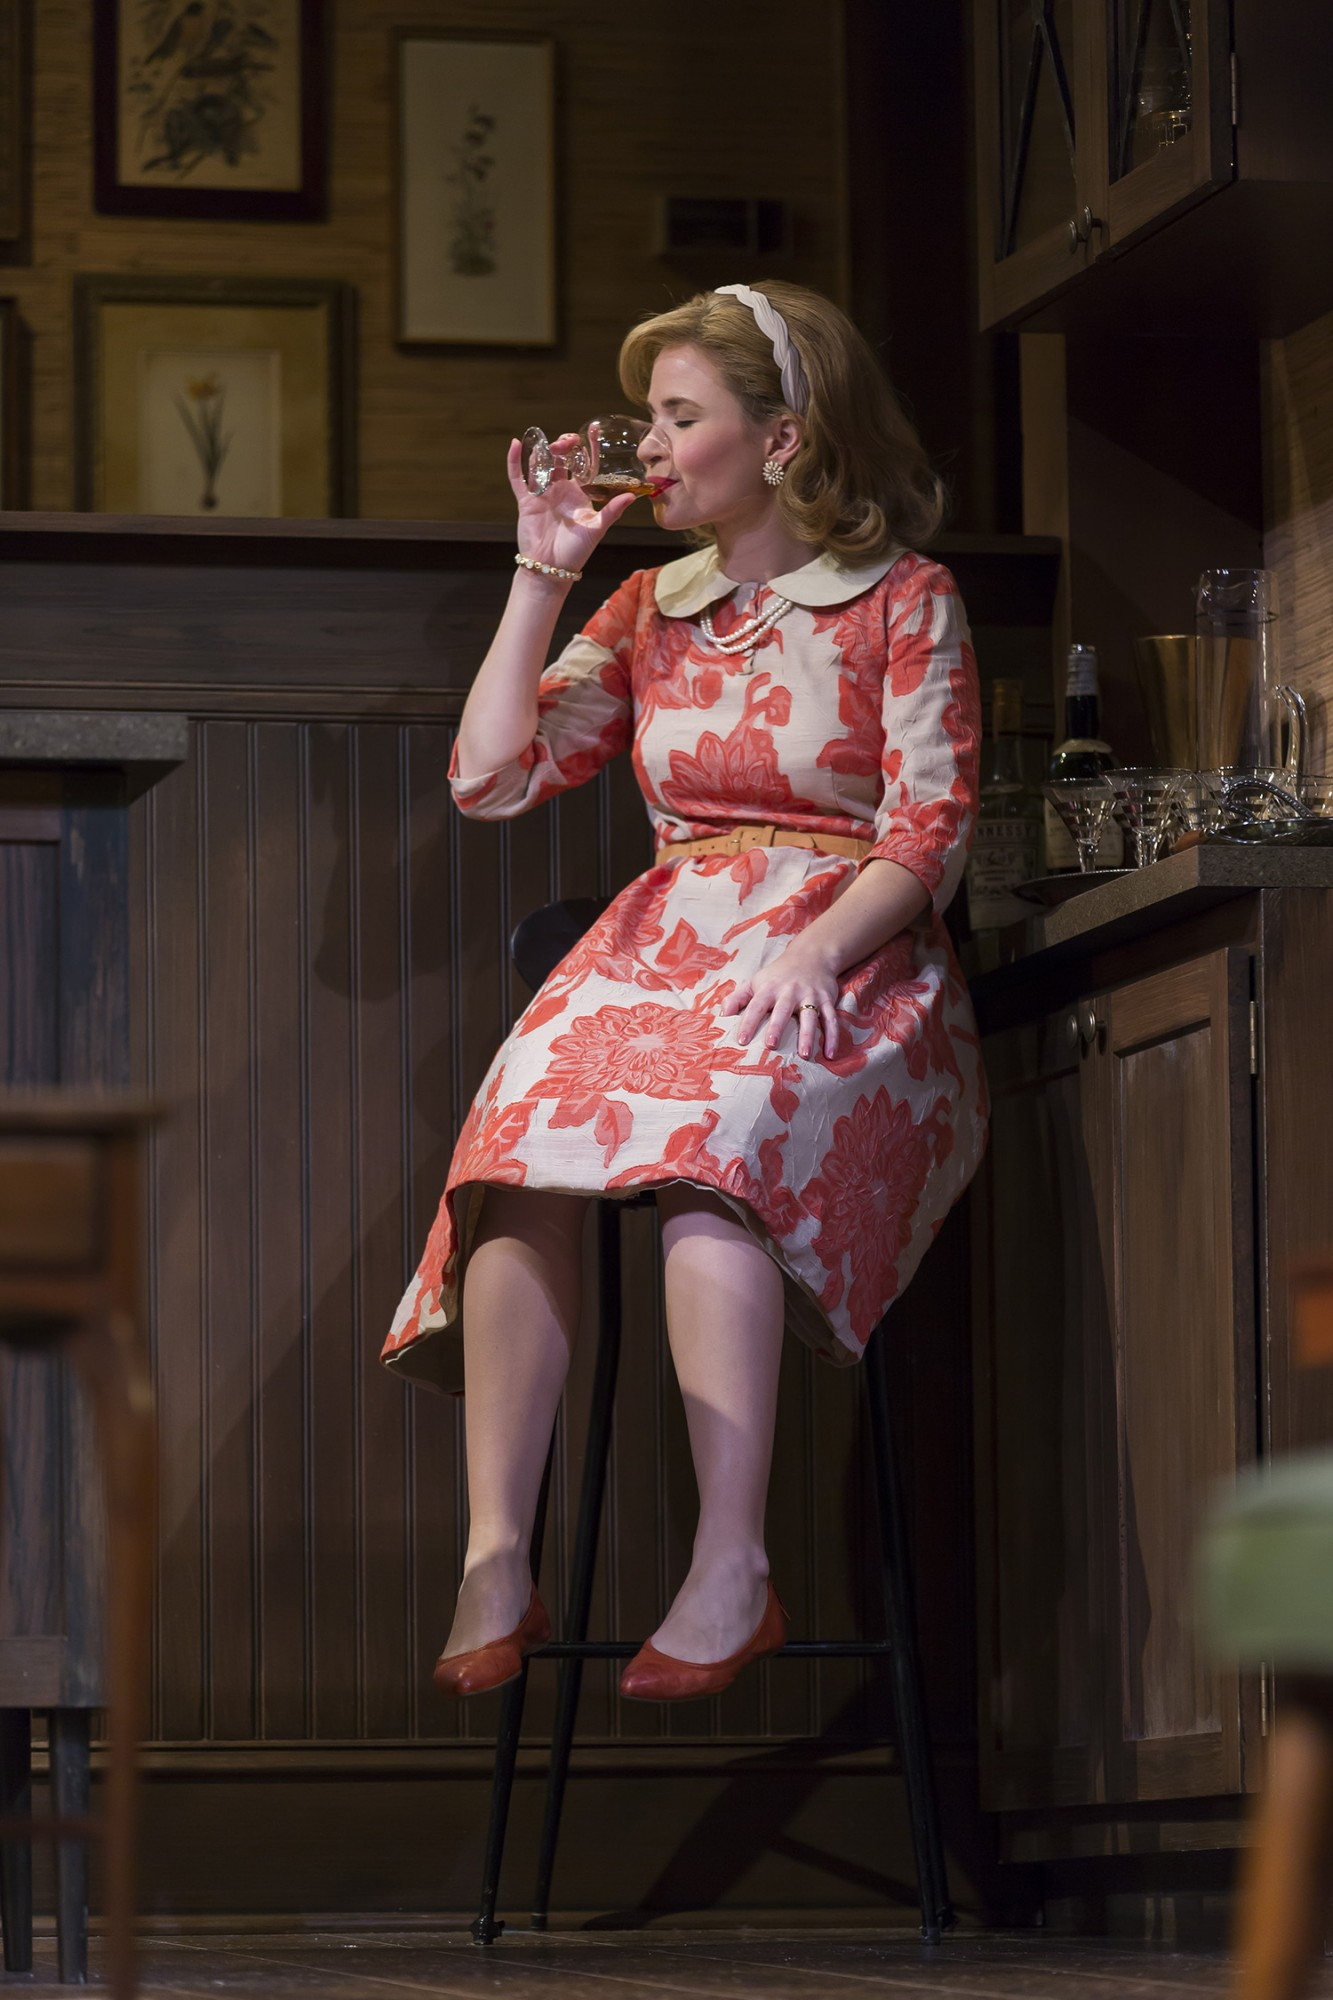 Maggie Wilder As Honey In The Fords Theatre Production Of Edward Albees Whos Afraid Of Virginia Woolf Directed By Aaron Posner